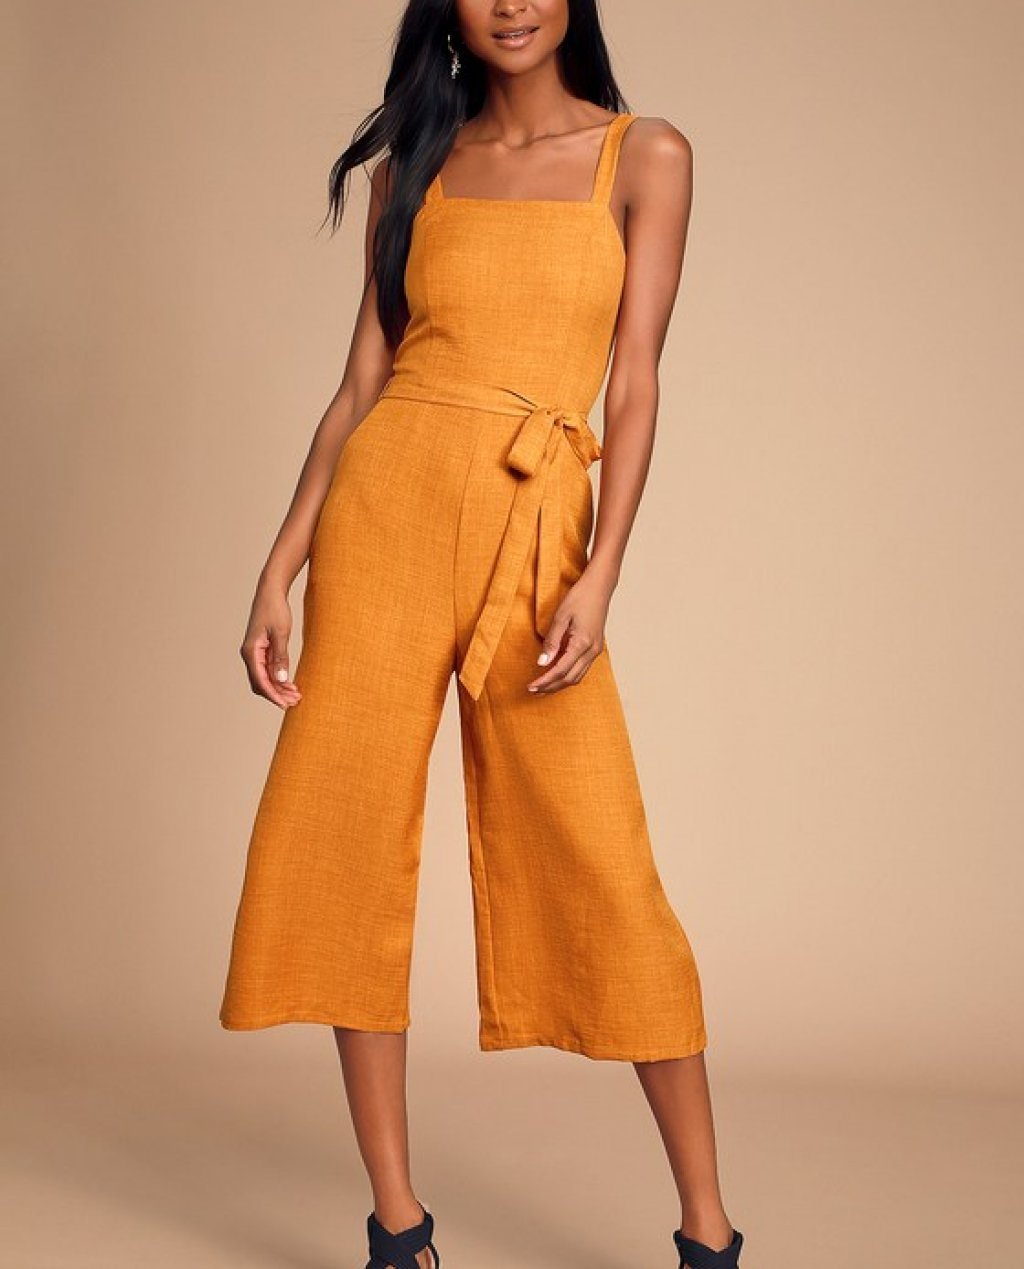 Morning Marigold Mustard Yellow Culotte Jumpsuit